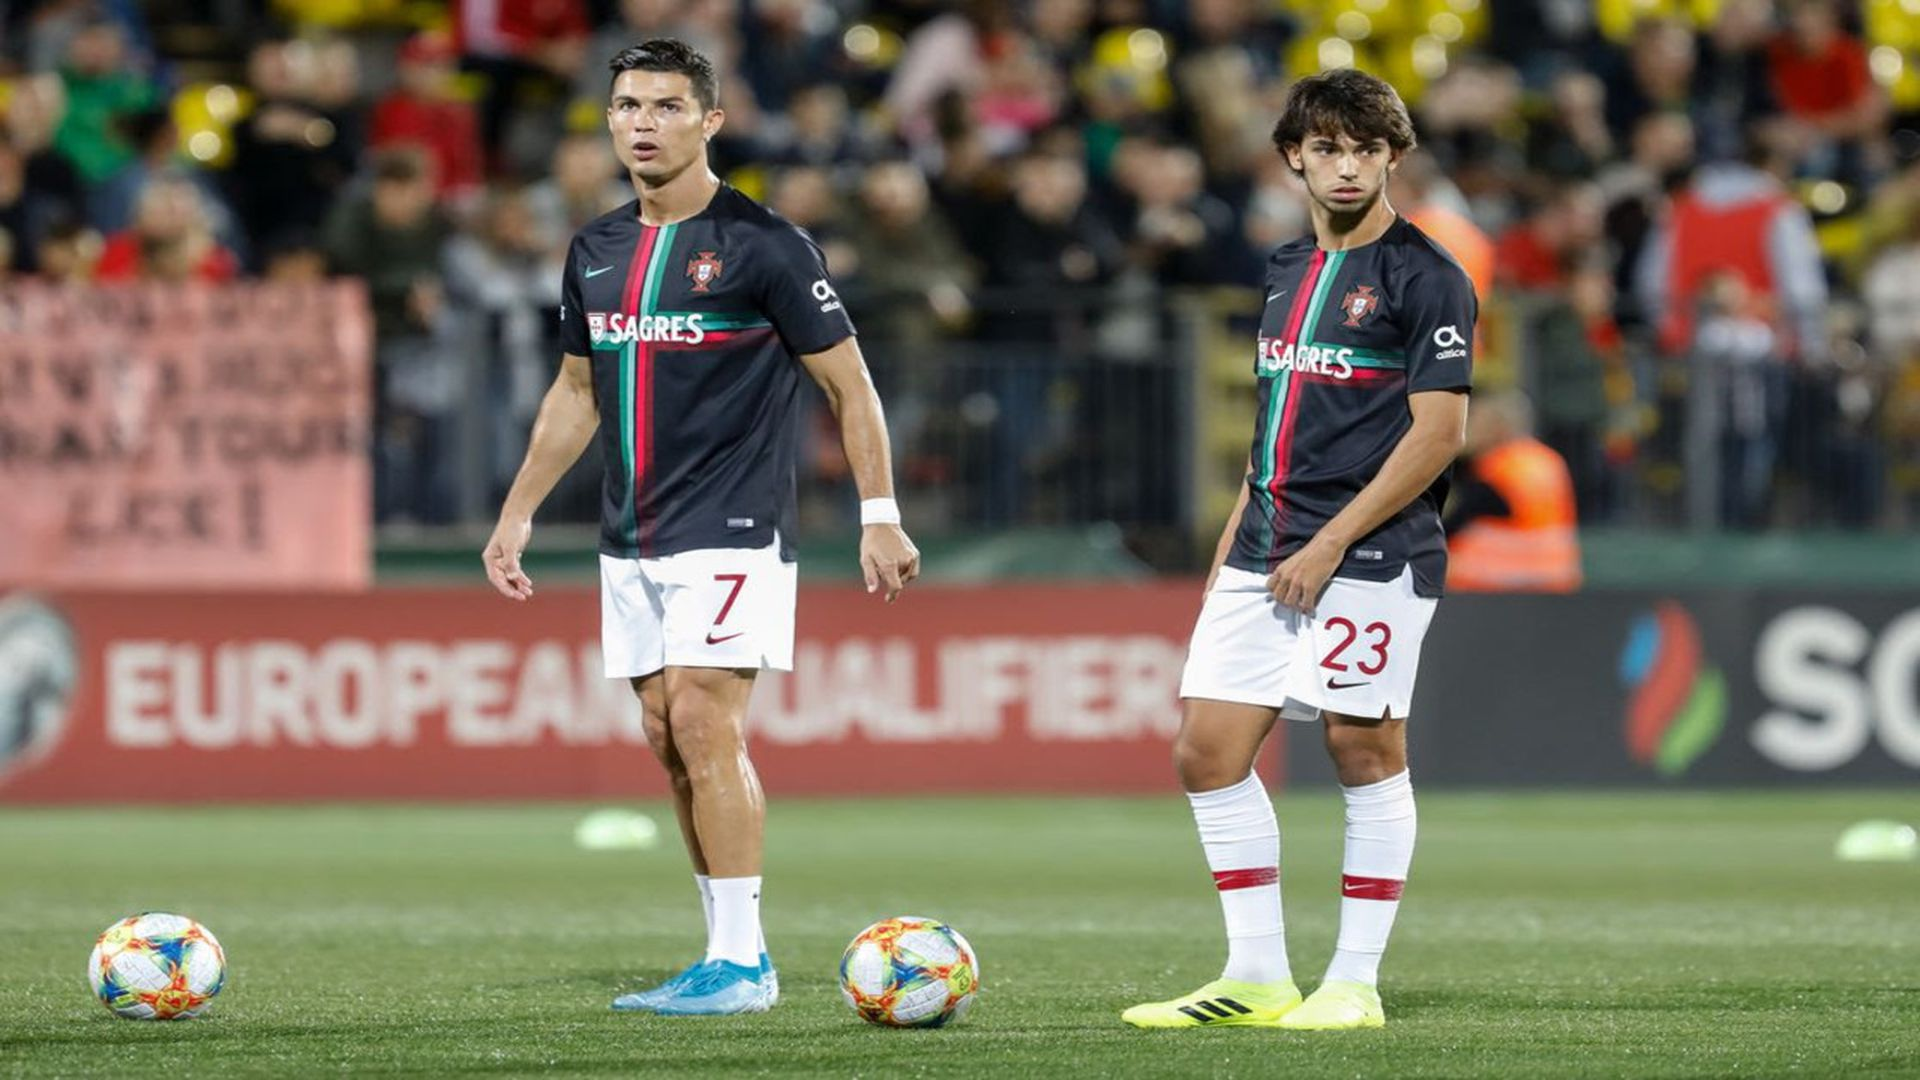 Cristiano Ronaldo (the present) and João Félix (the future). Photo: Mike Kireev/NurPhoto via Getty Images